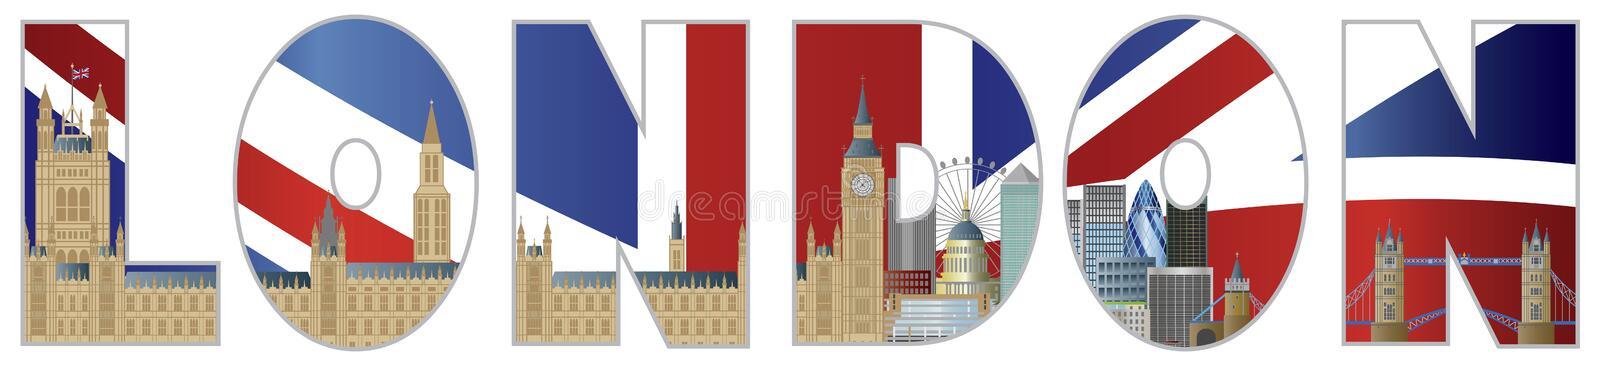 Palace of Westminster and London City Skyline Text royalty free illustration